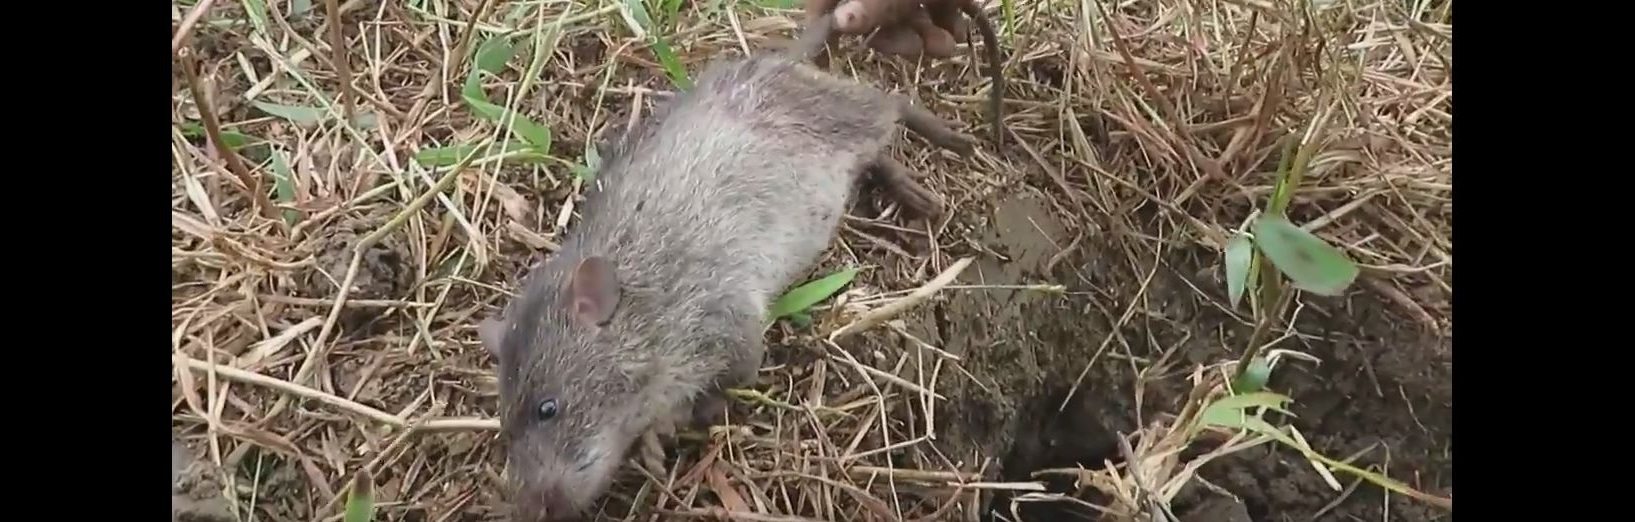 How long does it take for a dead rat to start smelling, and